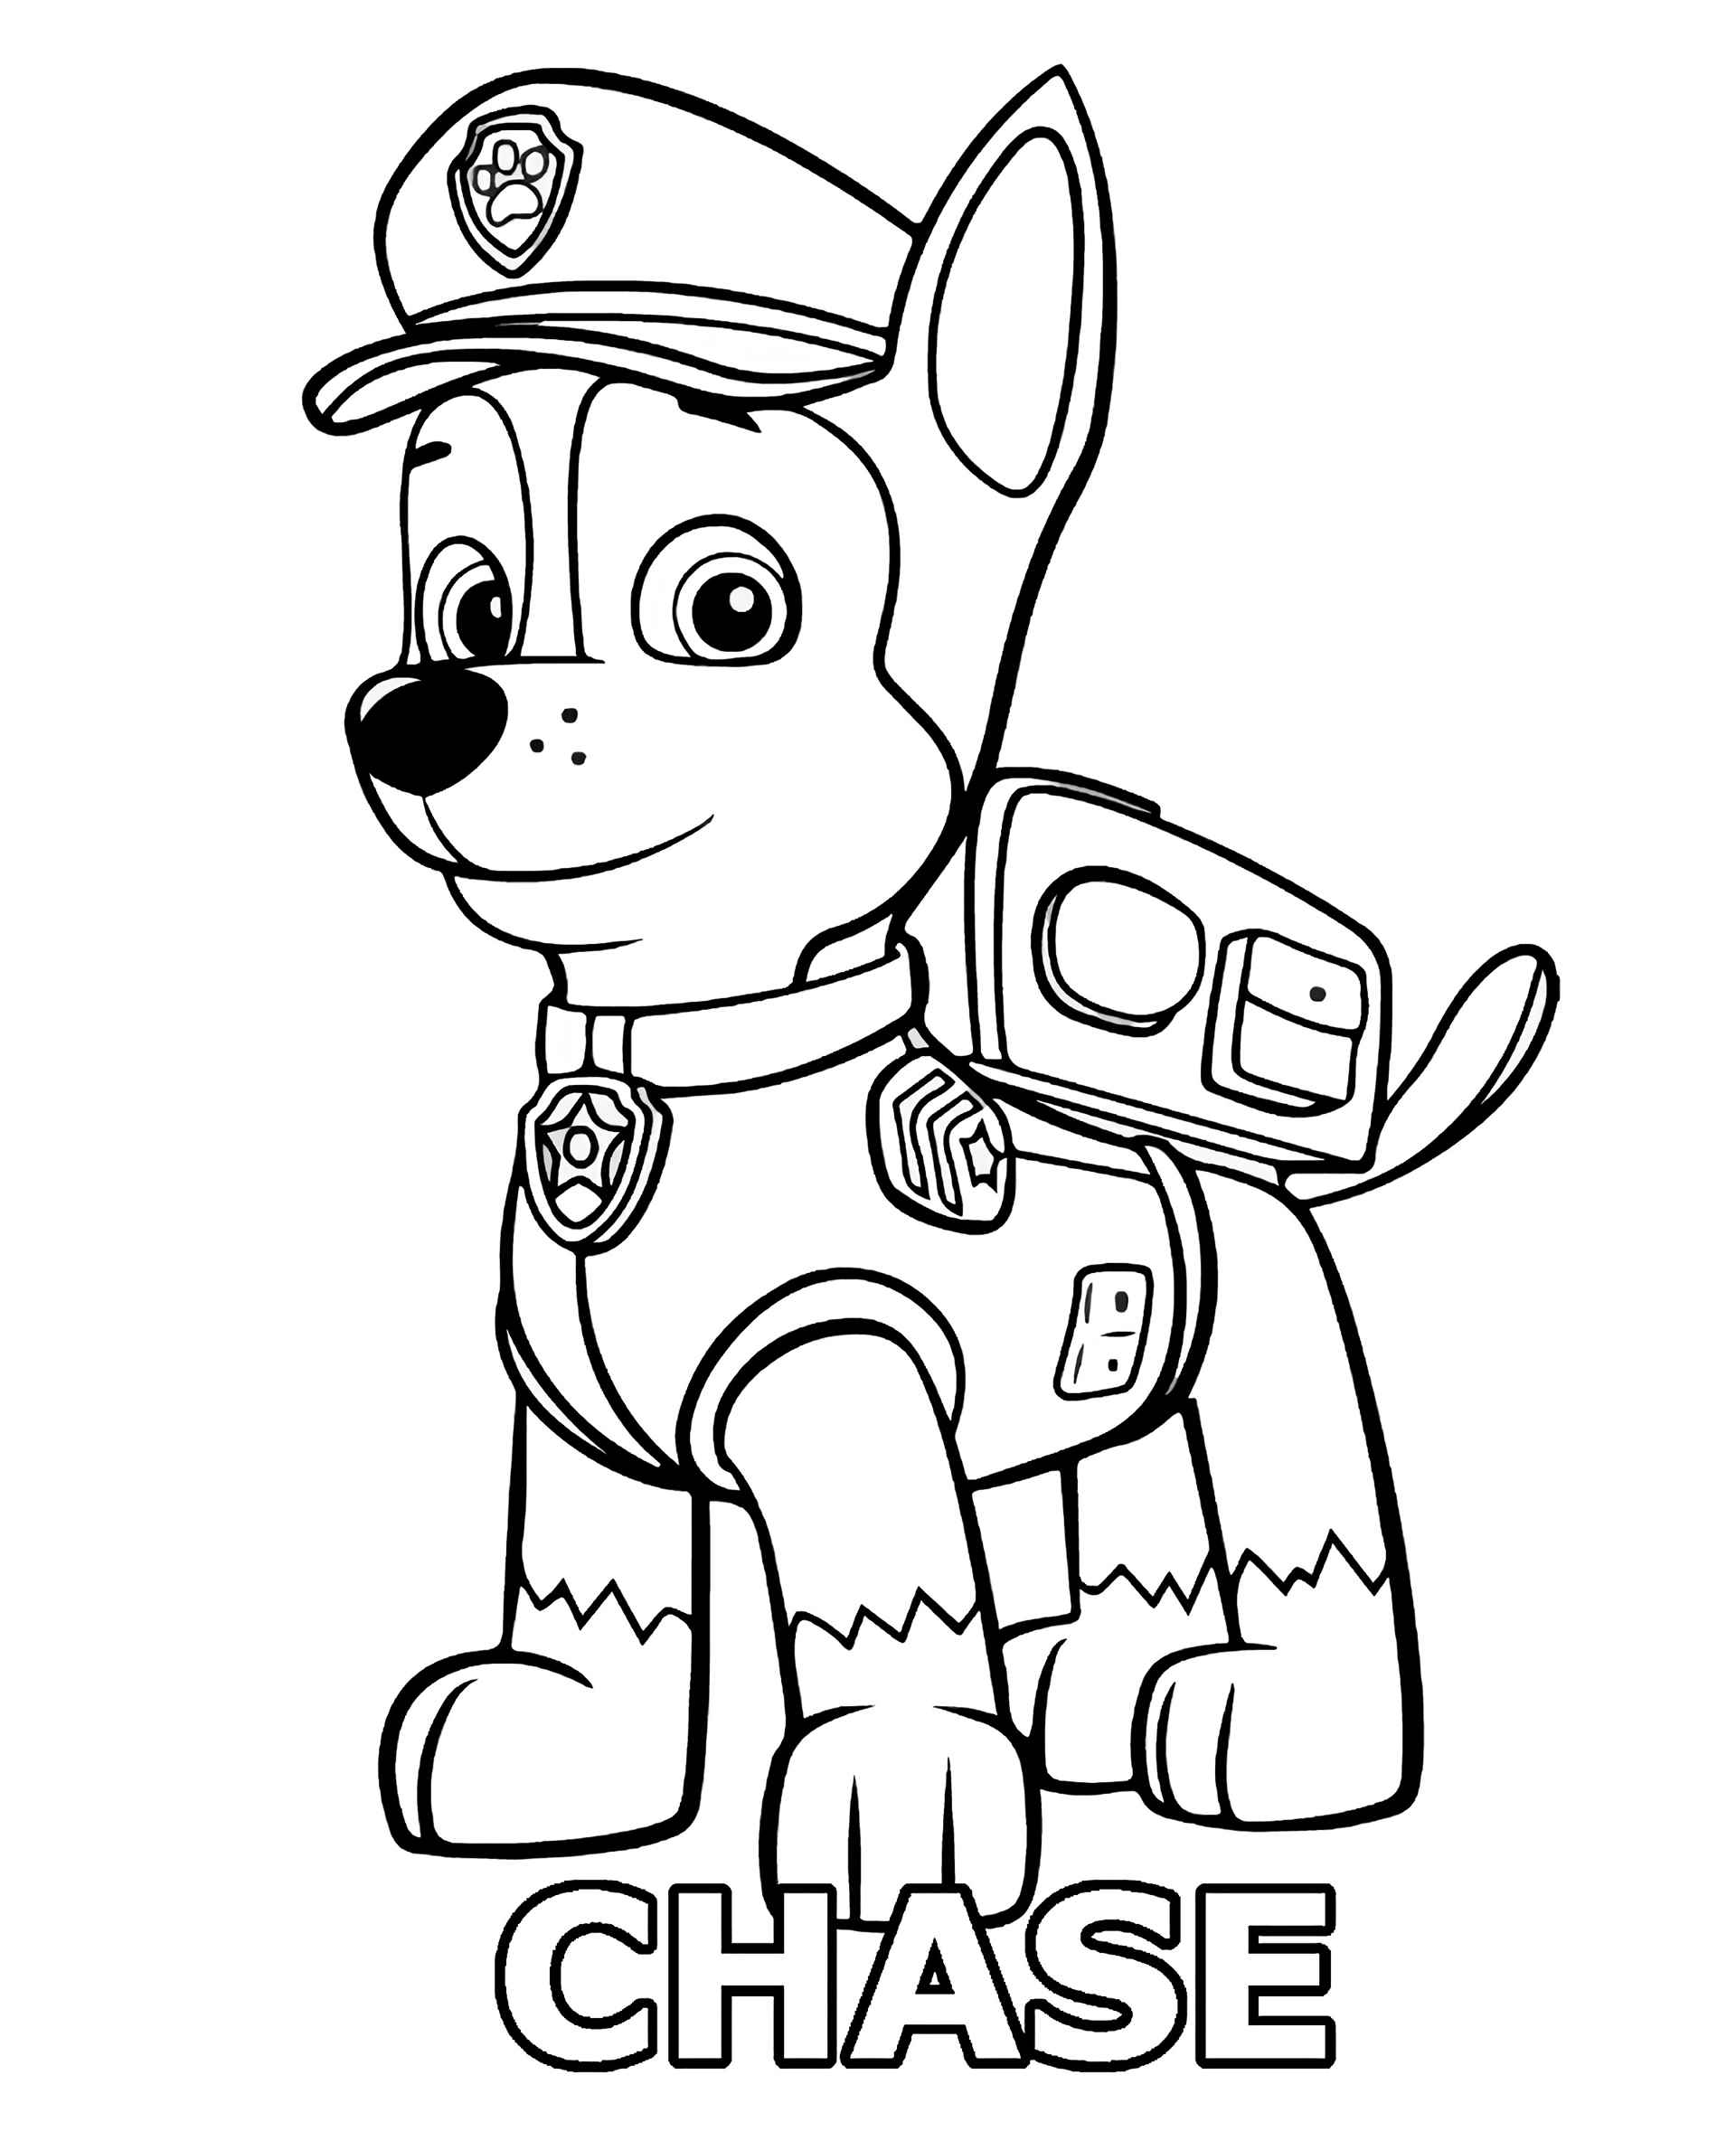 Chase From Paw Patrol Coloring Pages